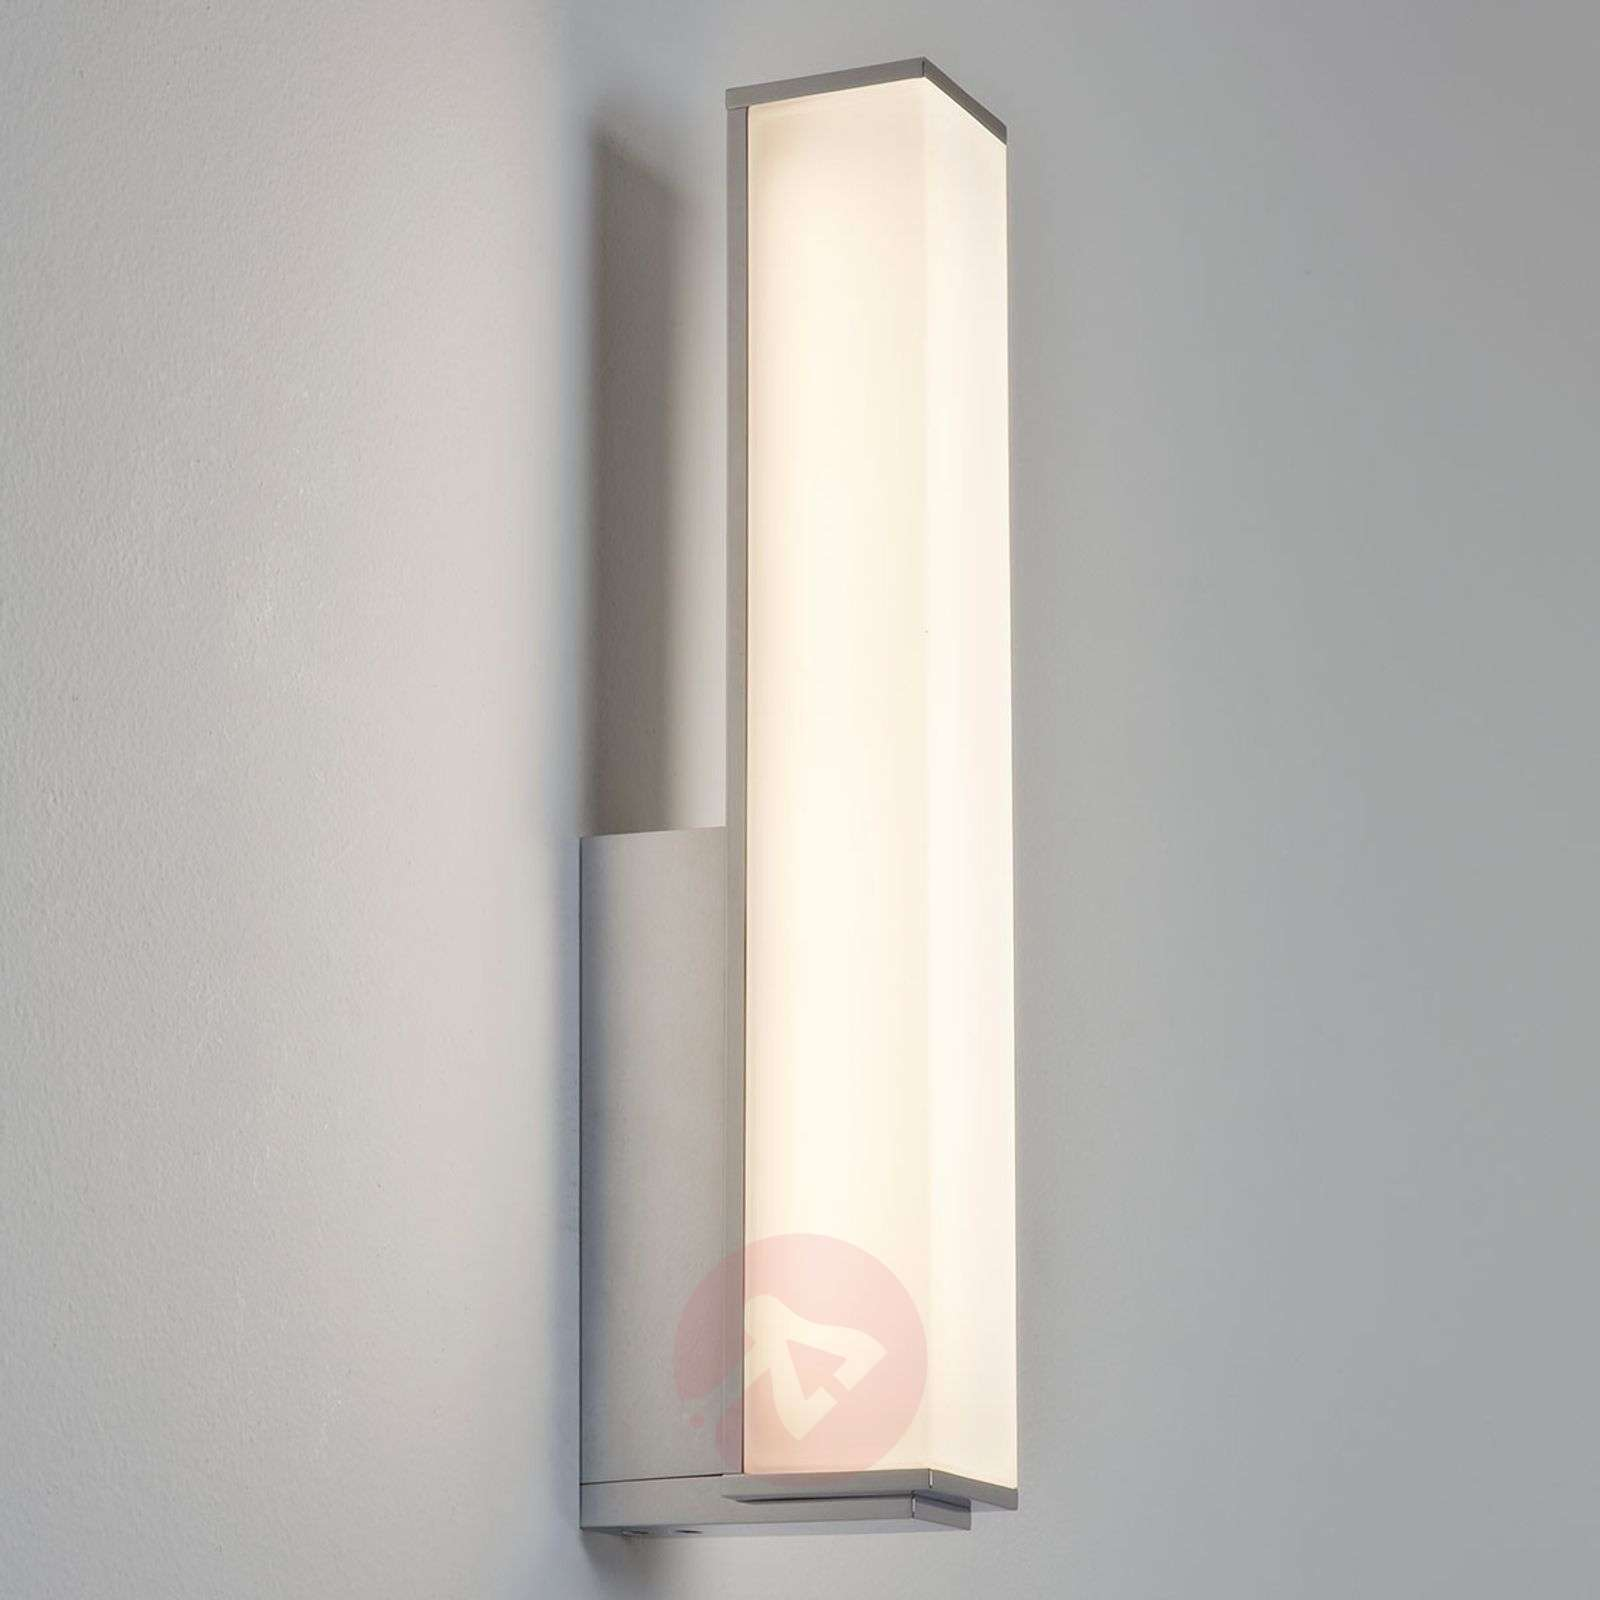 Karla LED Mirror Light for the Bathroom-1020455-03